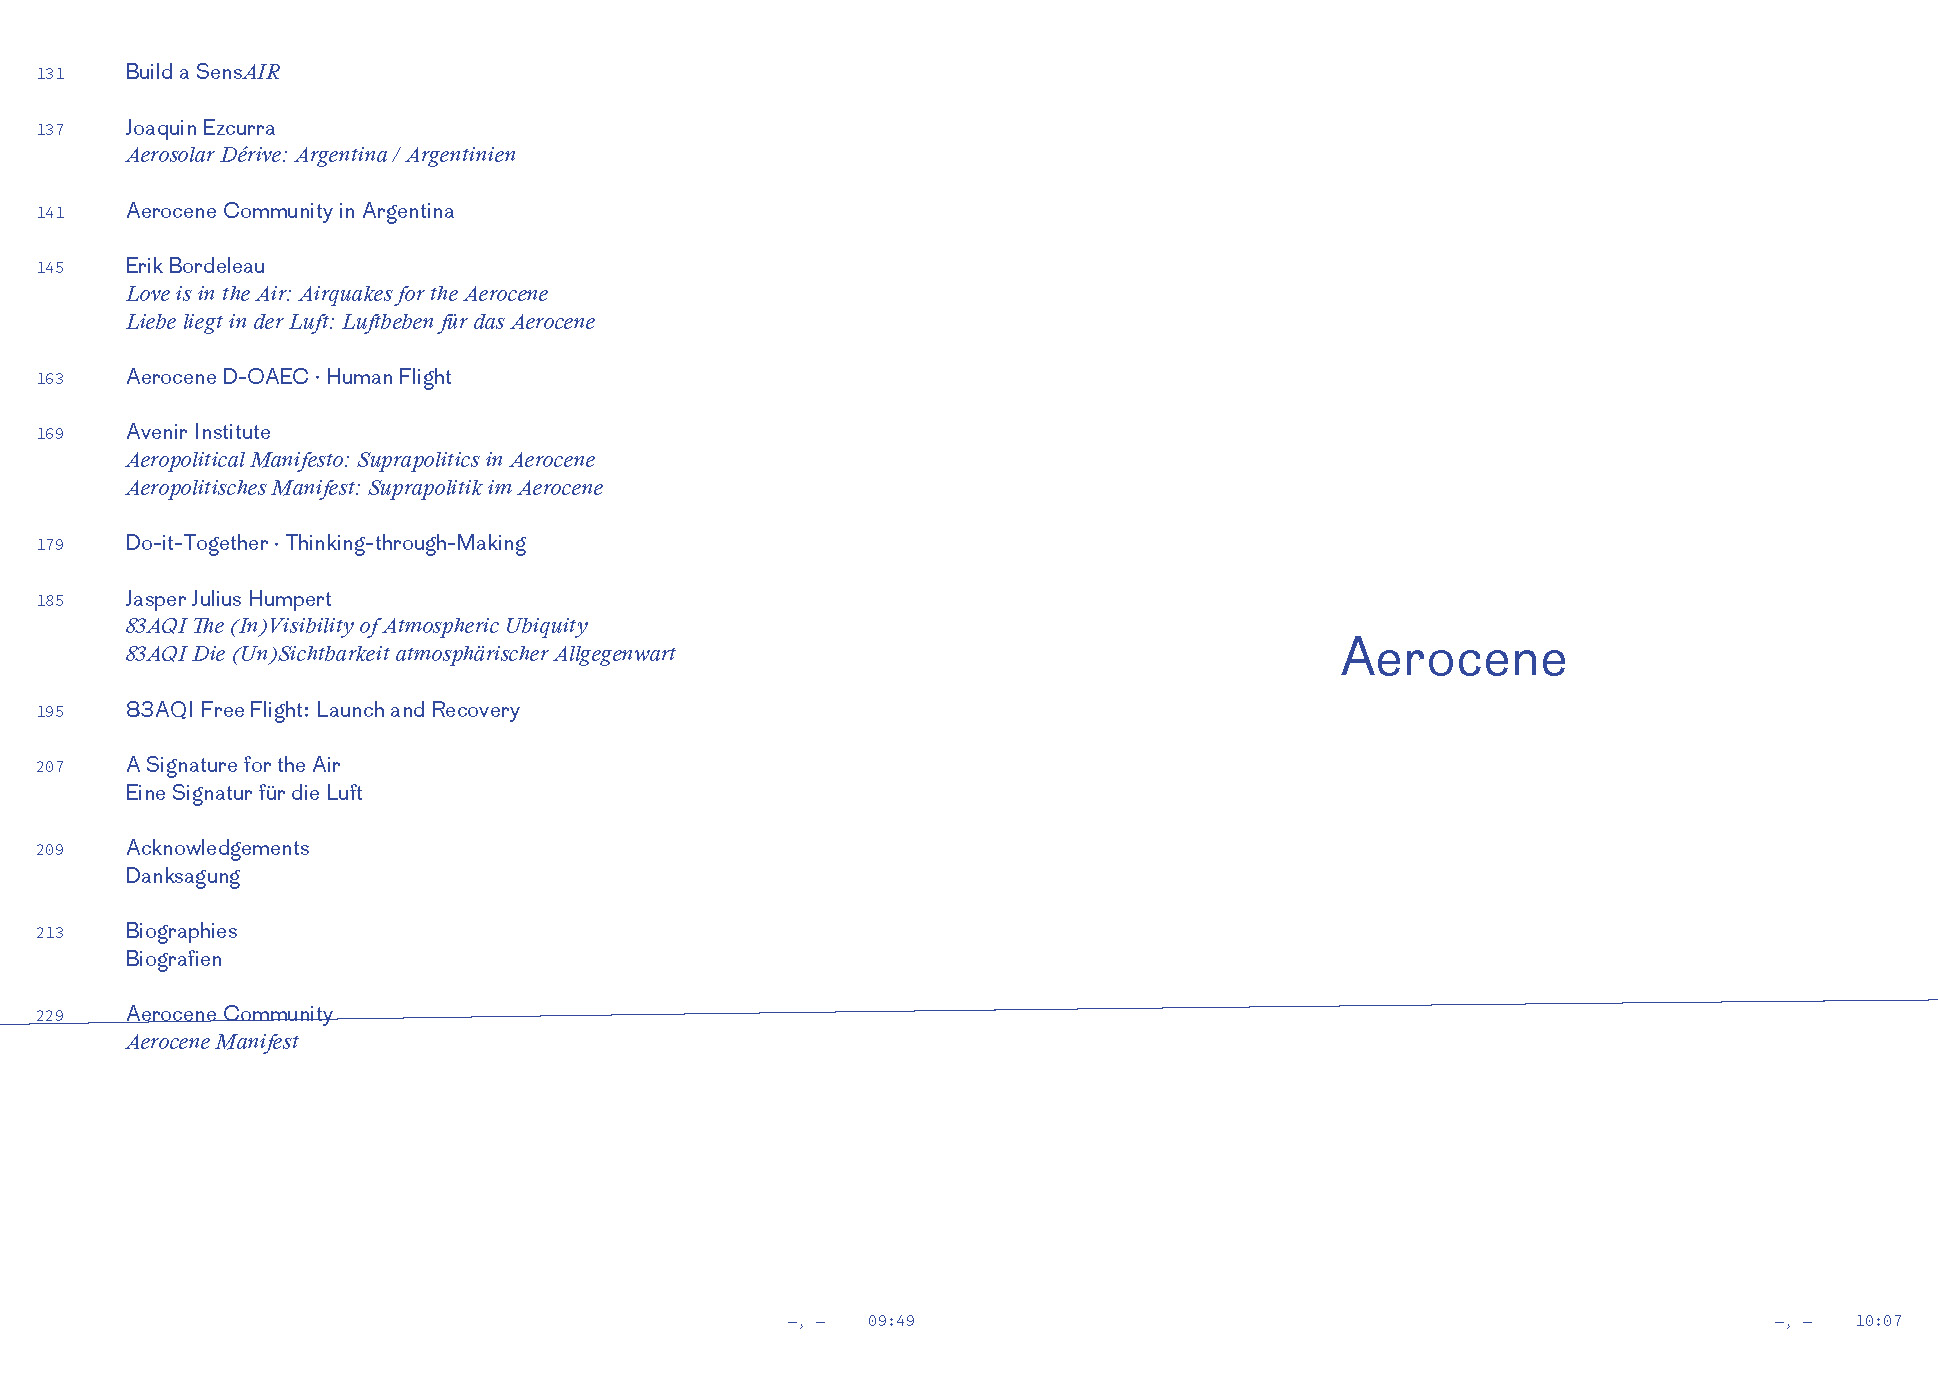 20AE_MovementsfortheAir_Aerocene (1)_Page_009